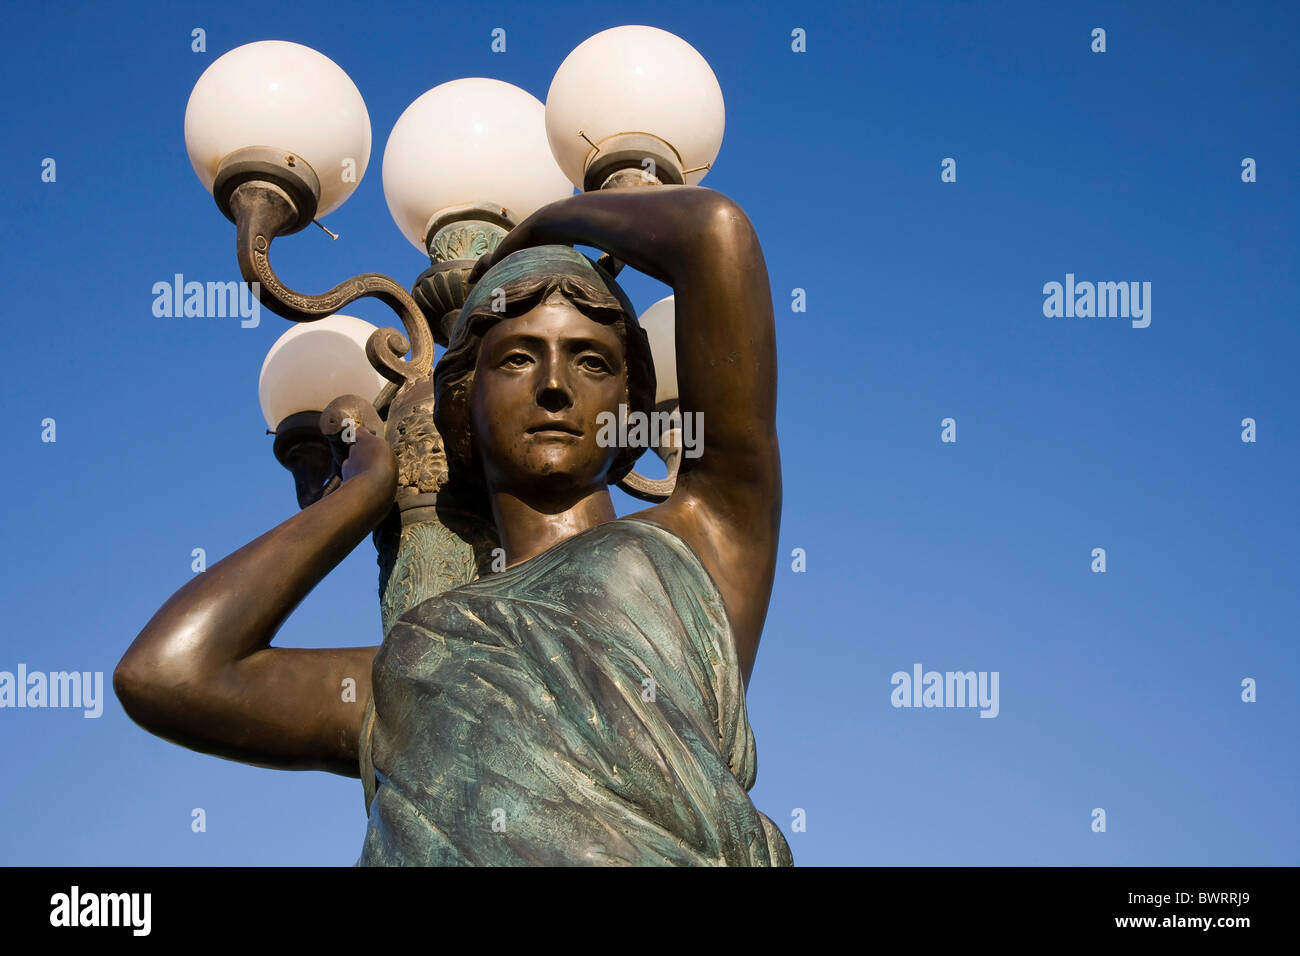 Bronze sculpture as a streetlight in a tourist resort, Sharm el Sheikh, Egypt, Africa - Stock Image